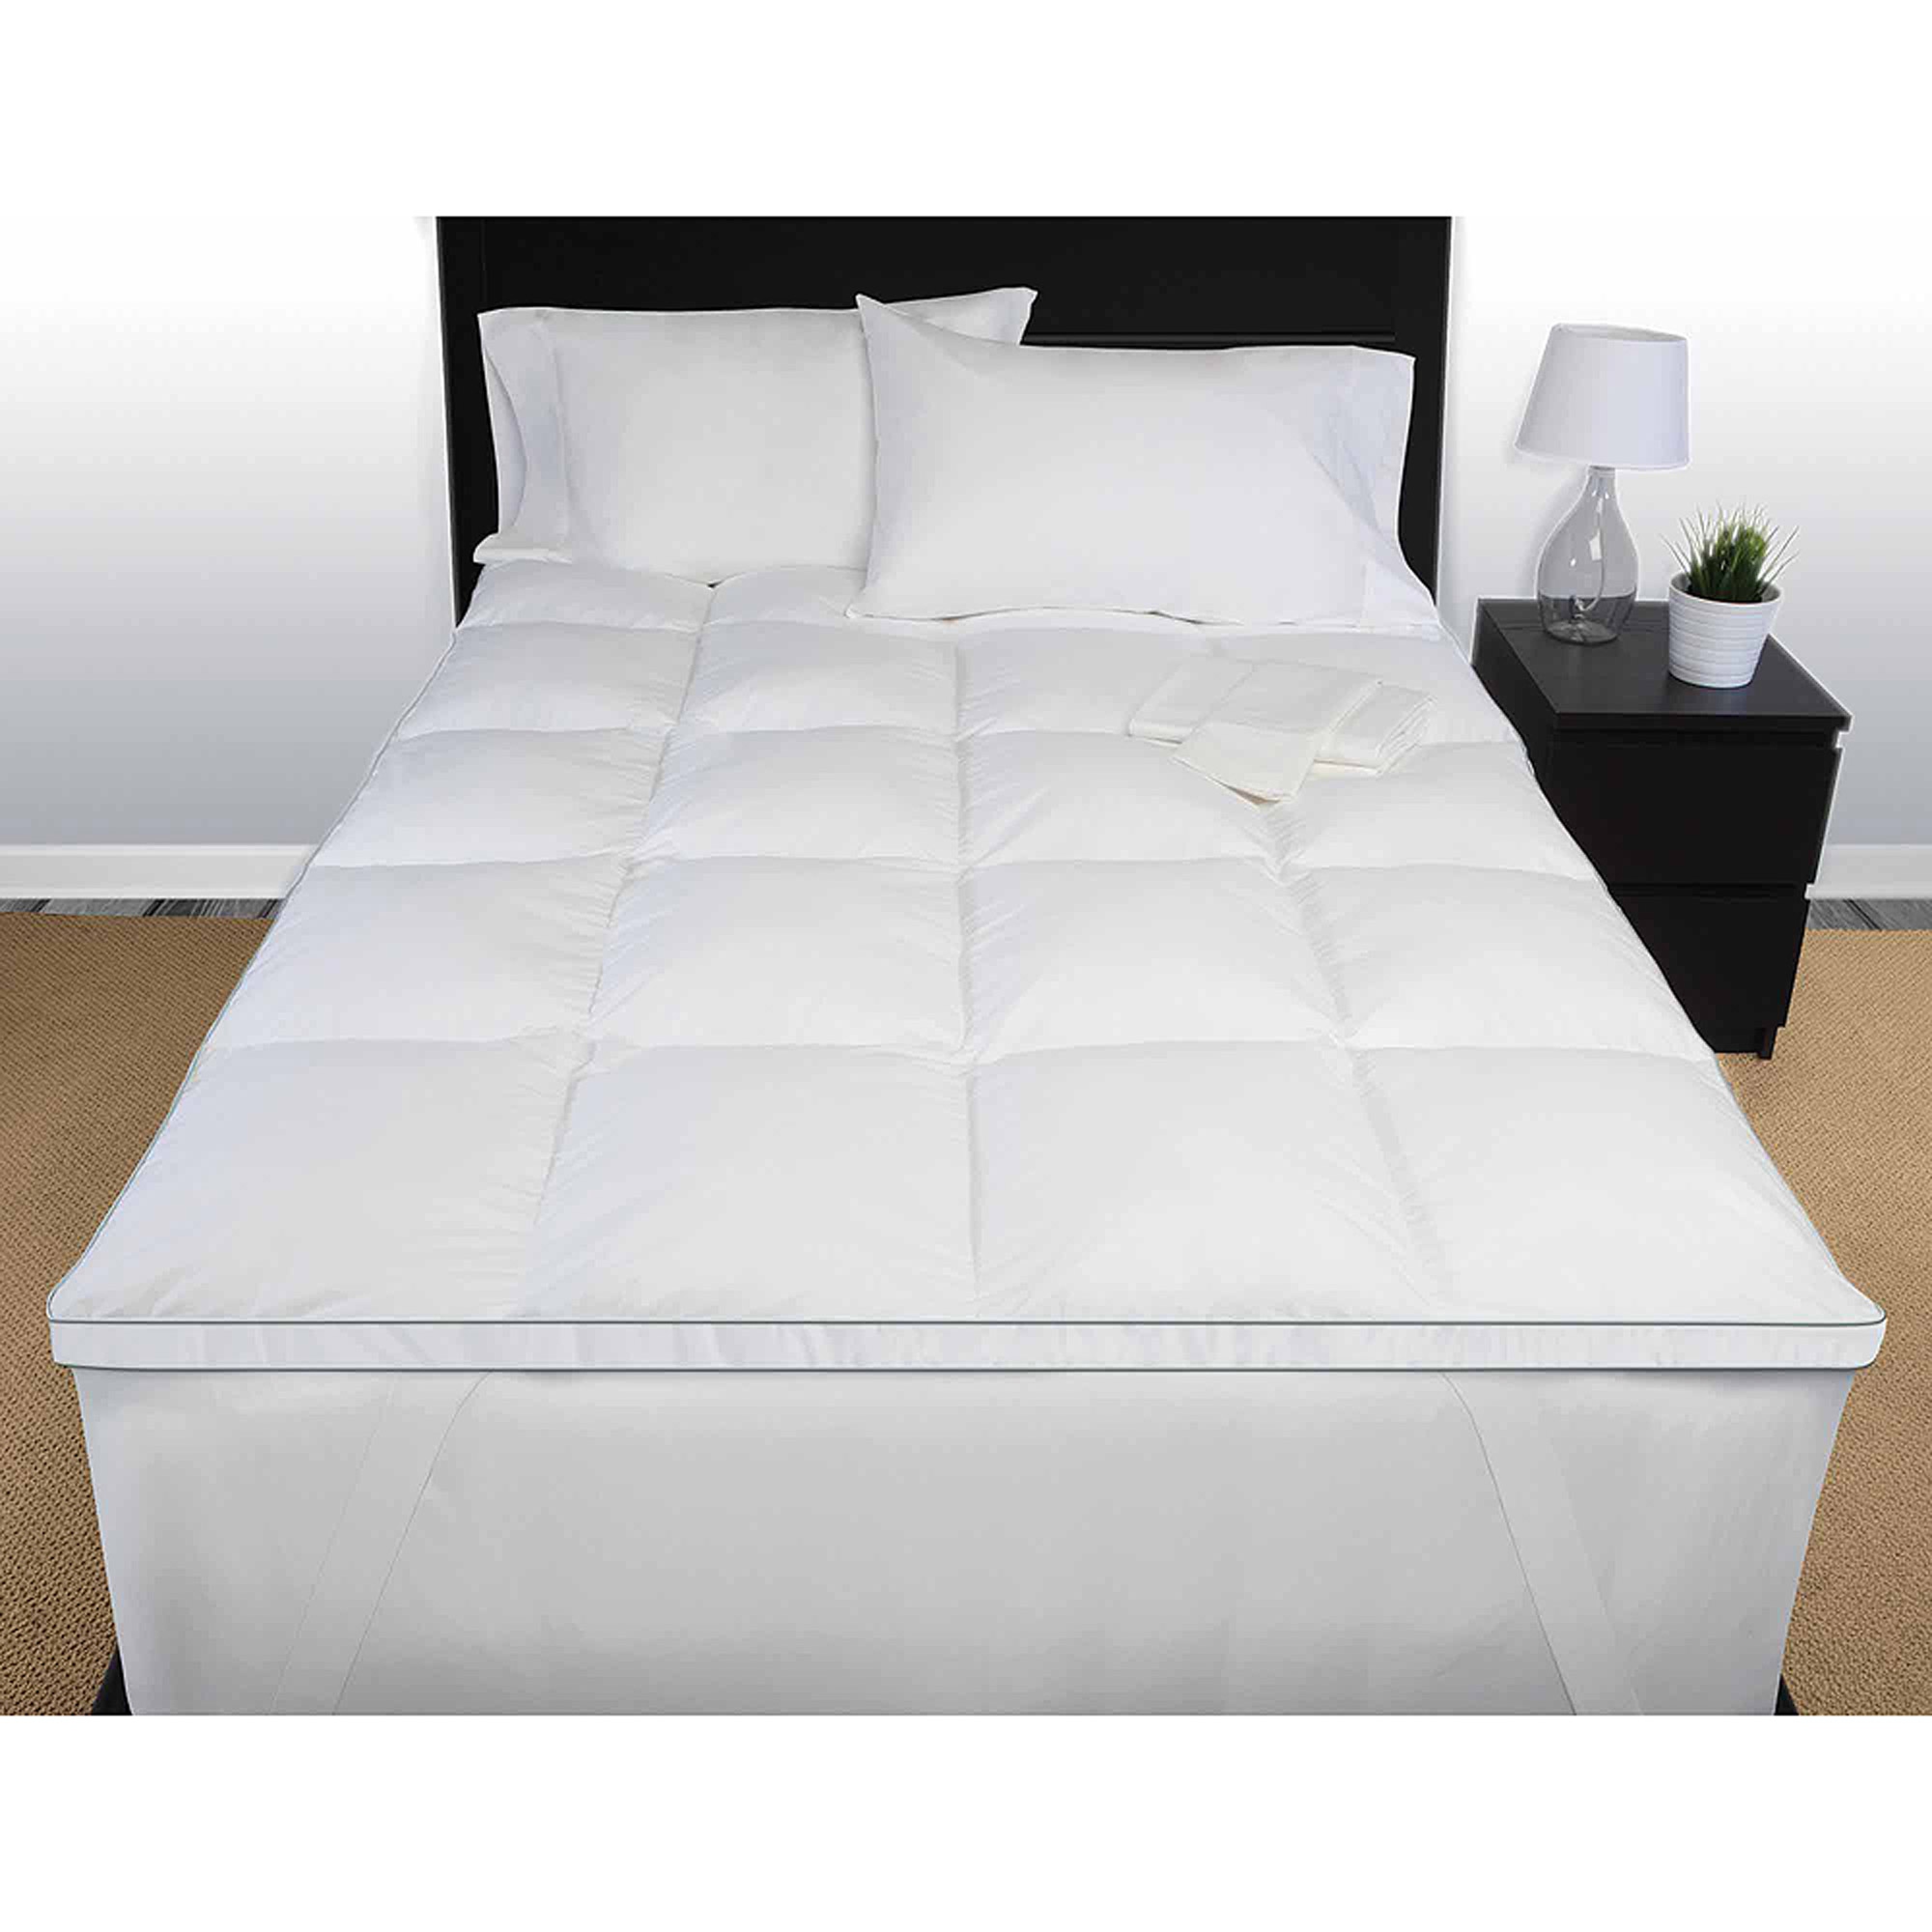 memory bath today overstock shipping foam product inch topper classic mattress and bedding free fiber blend swisslux